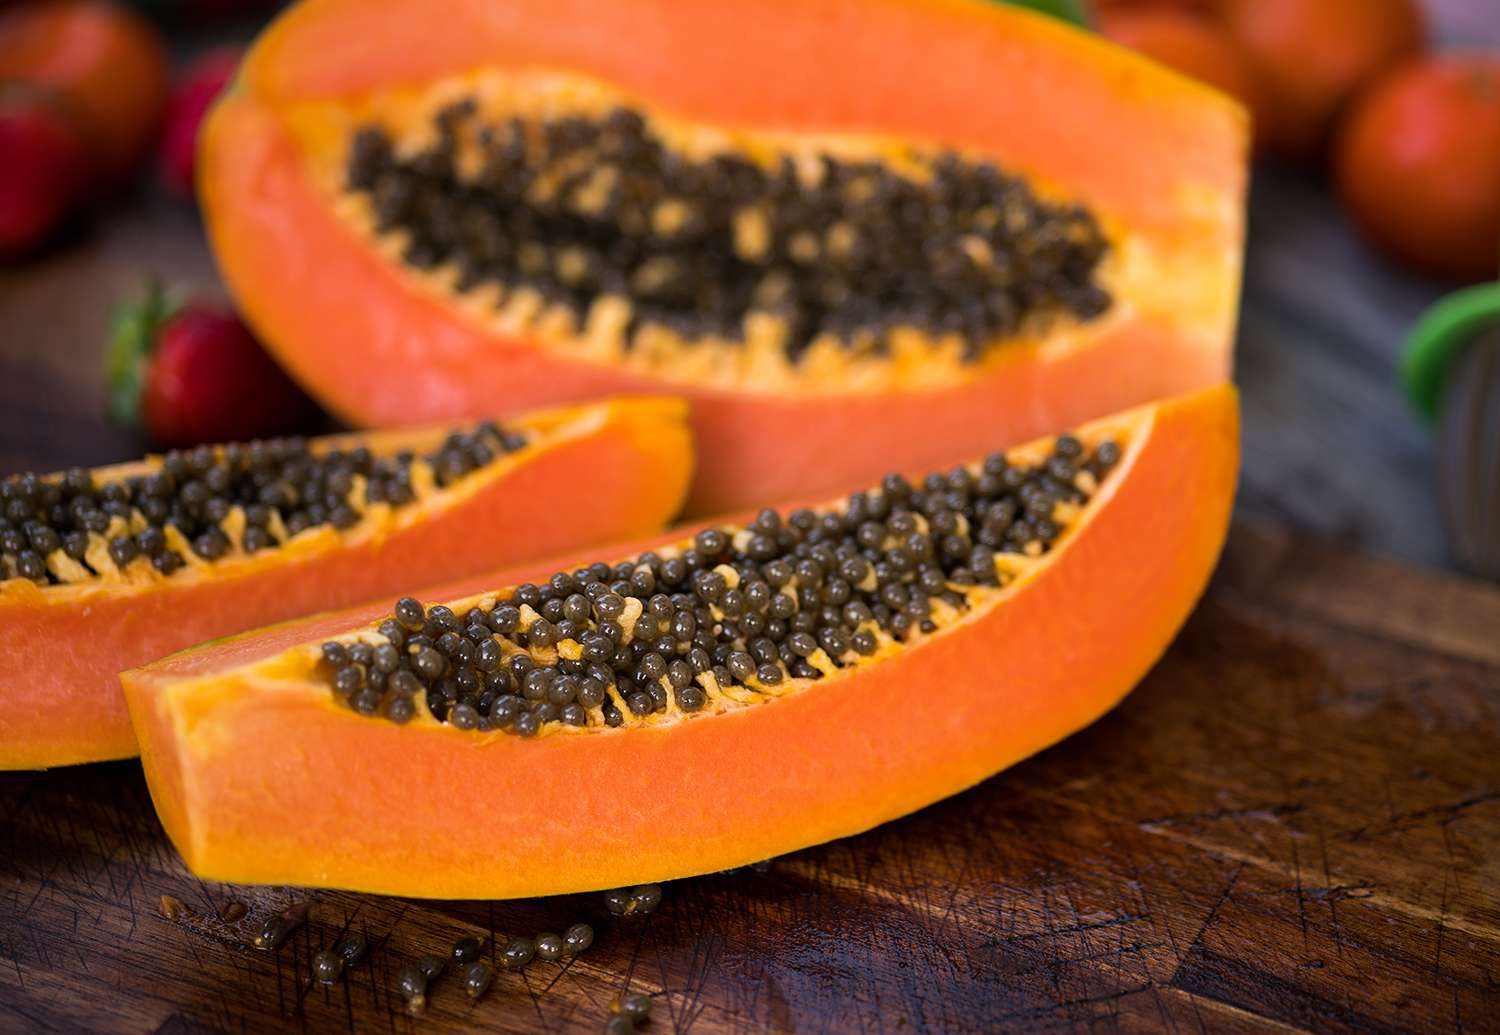 Slices of papaya with seeds